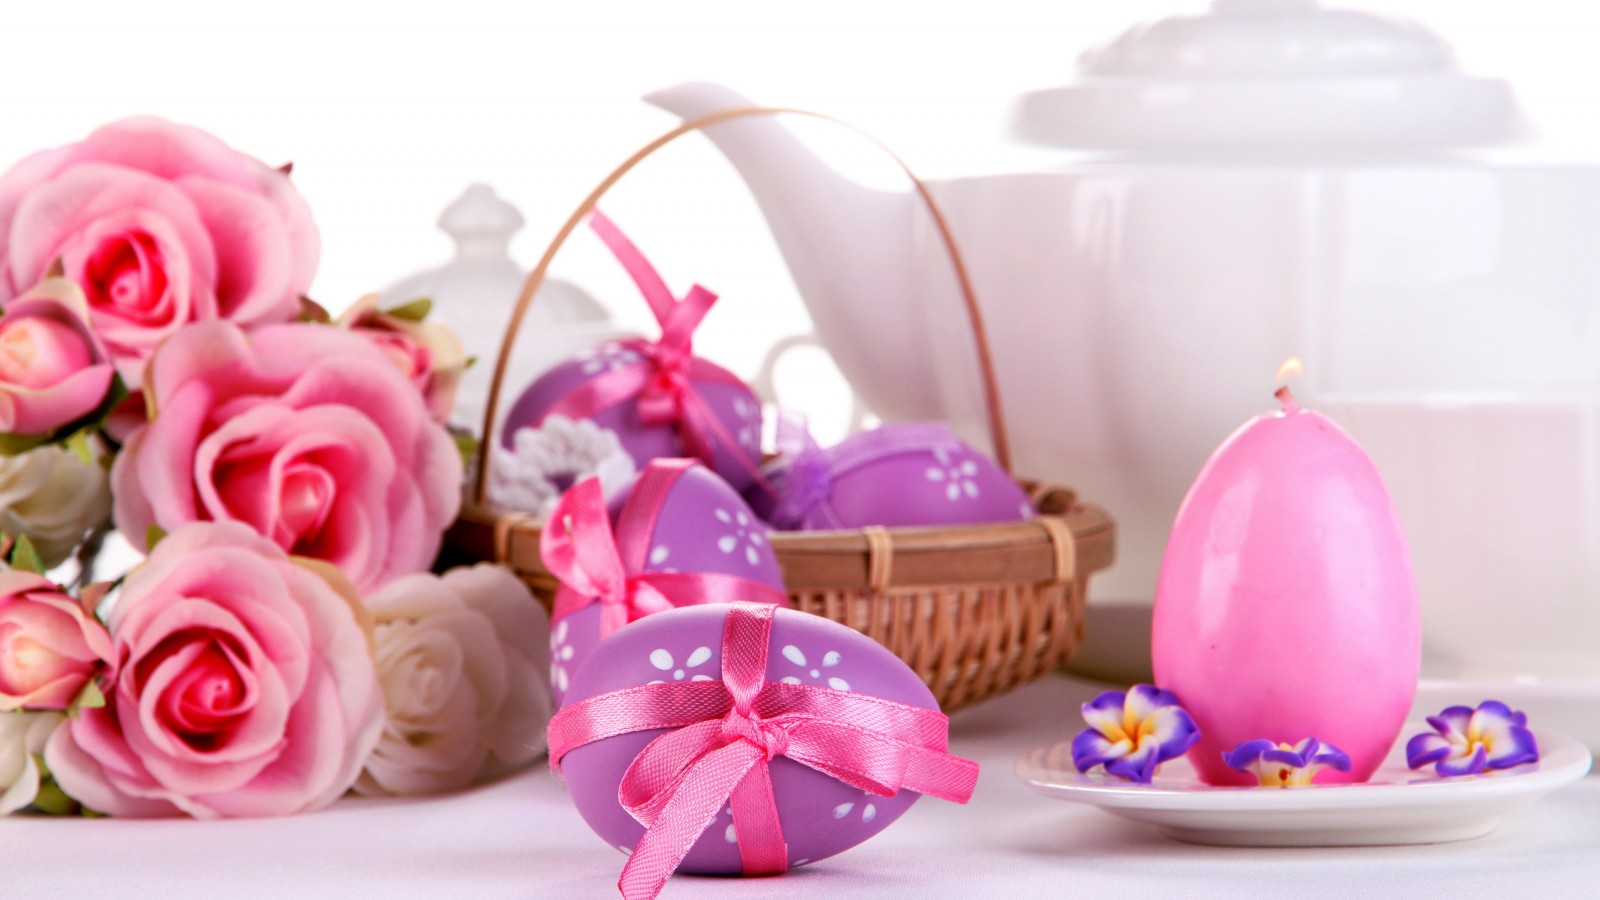 easter-eggs-roses-flowers-4875